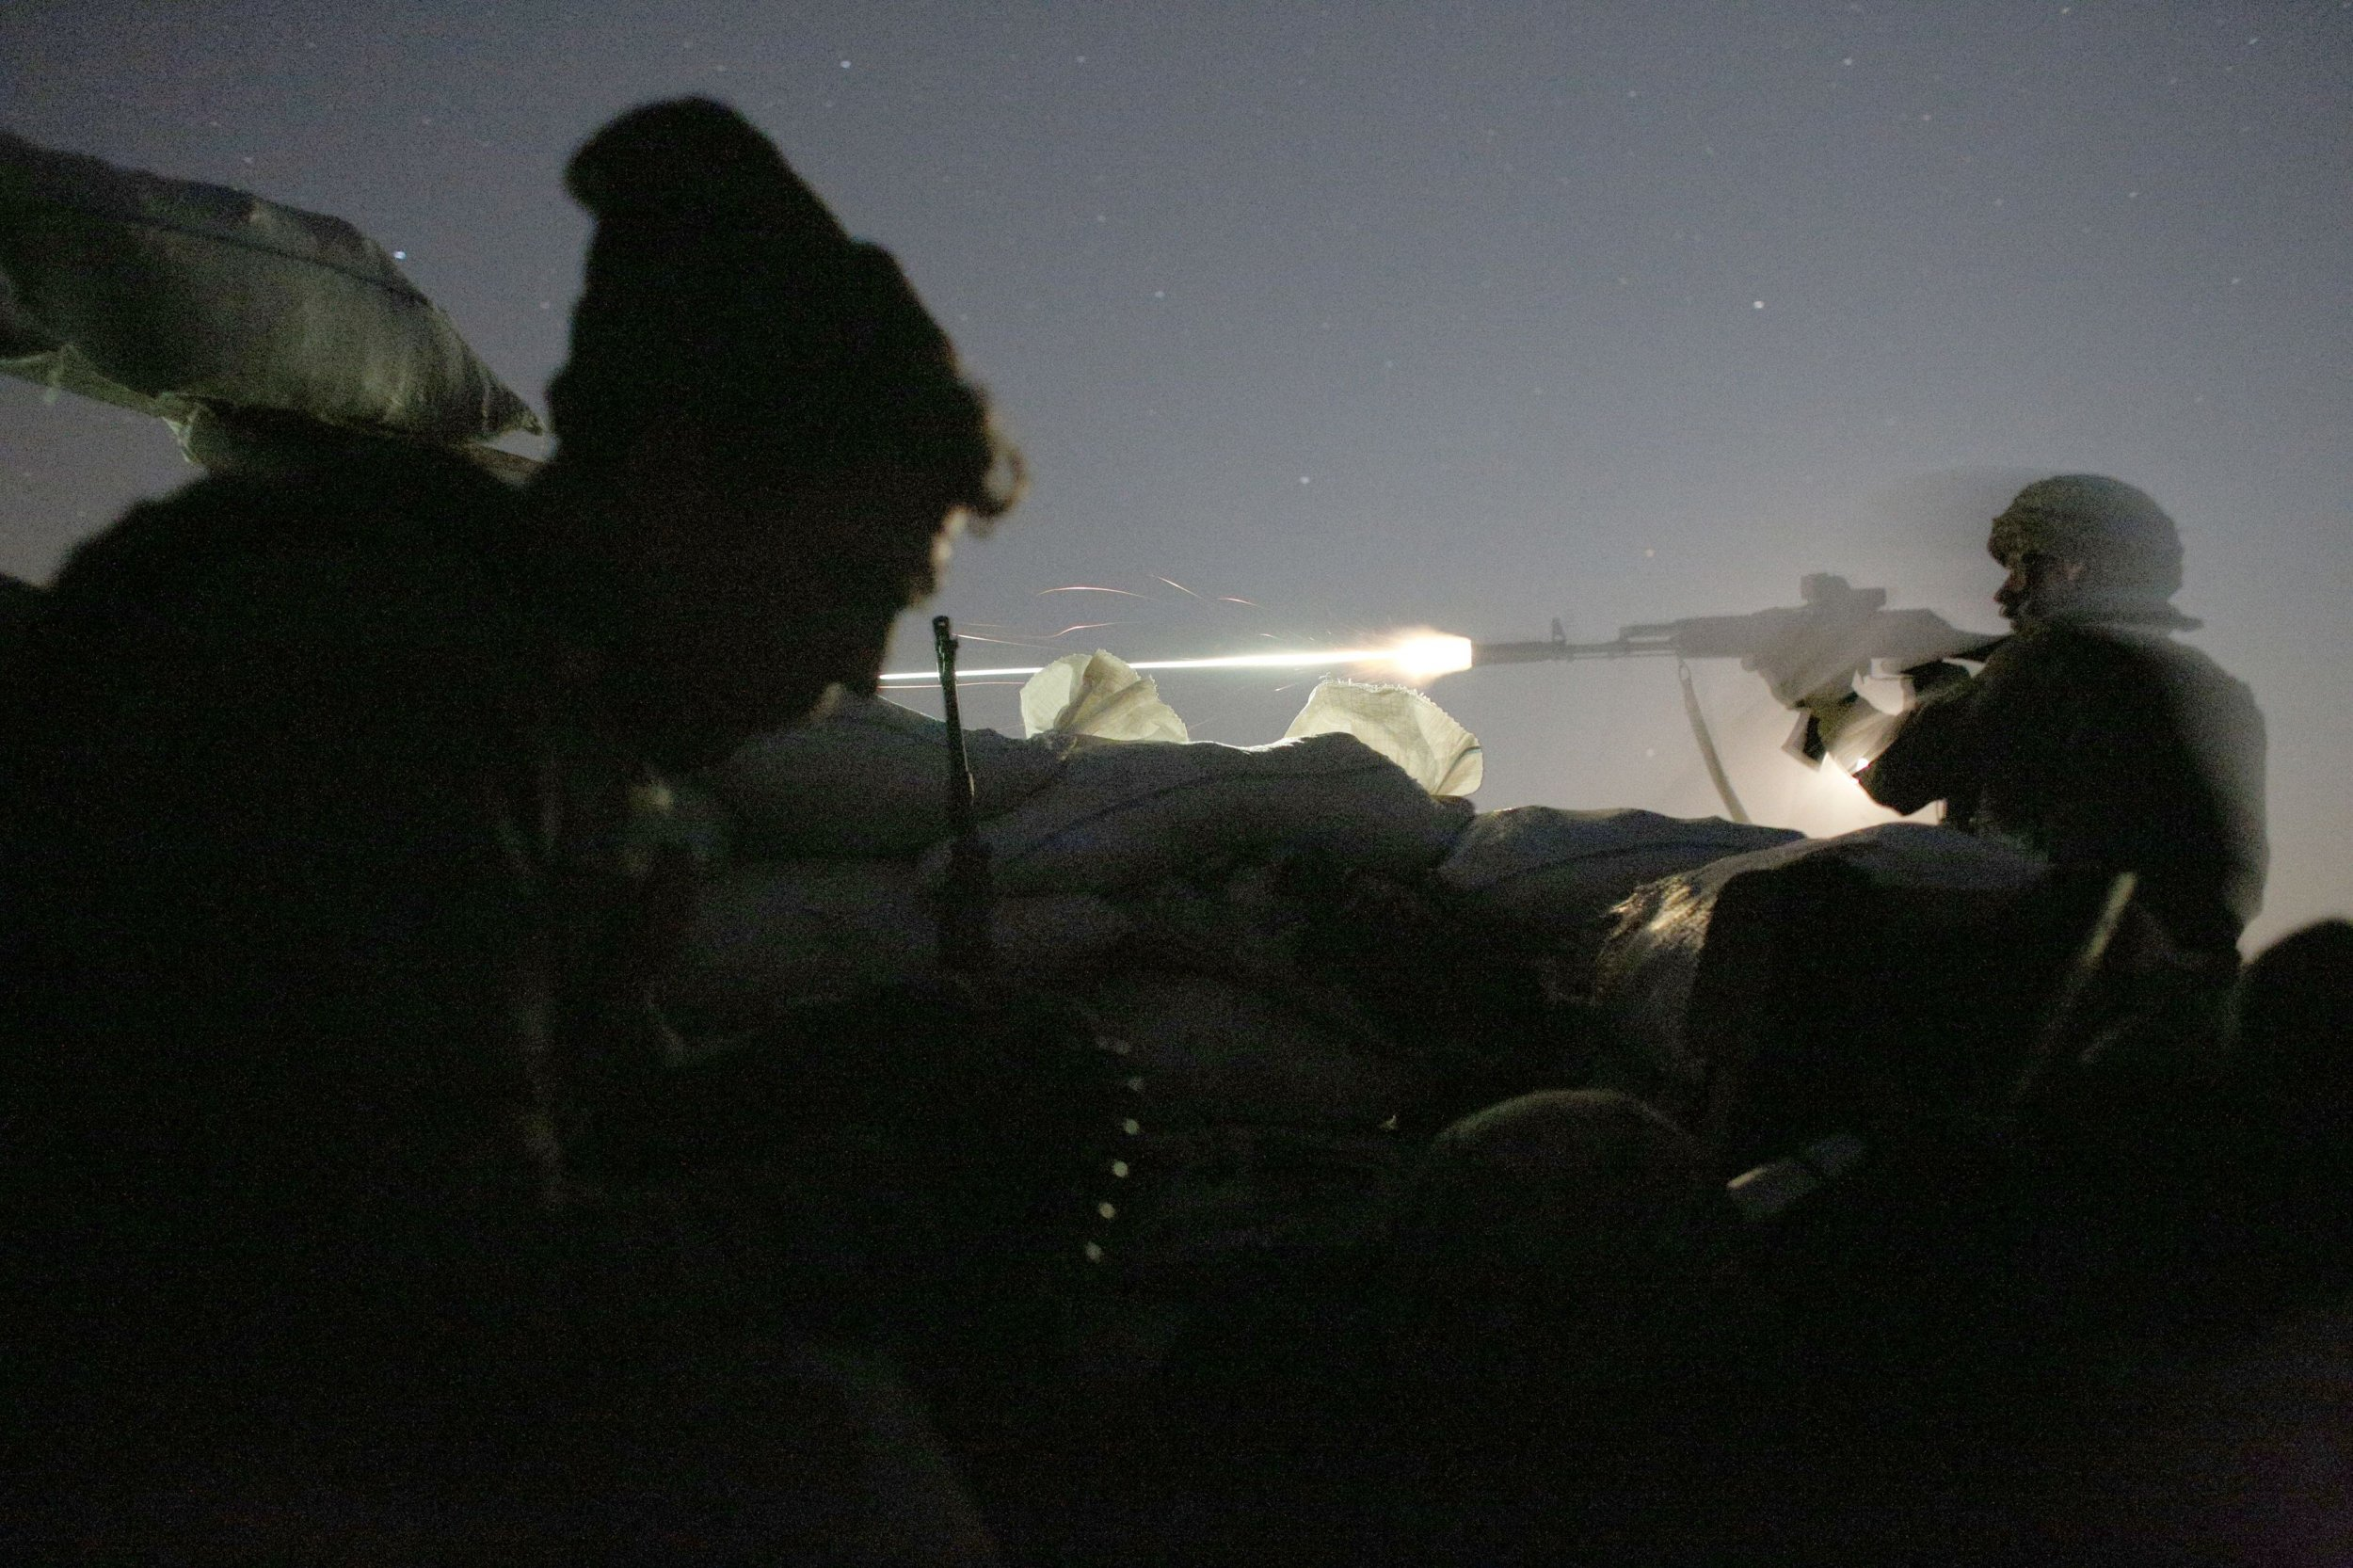 f14790d6d3d98 A Ukrainian serviceman fires his gun in the direction of Russia-backed  separatists during night combat near the village Zaytseve not far from the  the ...